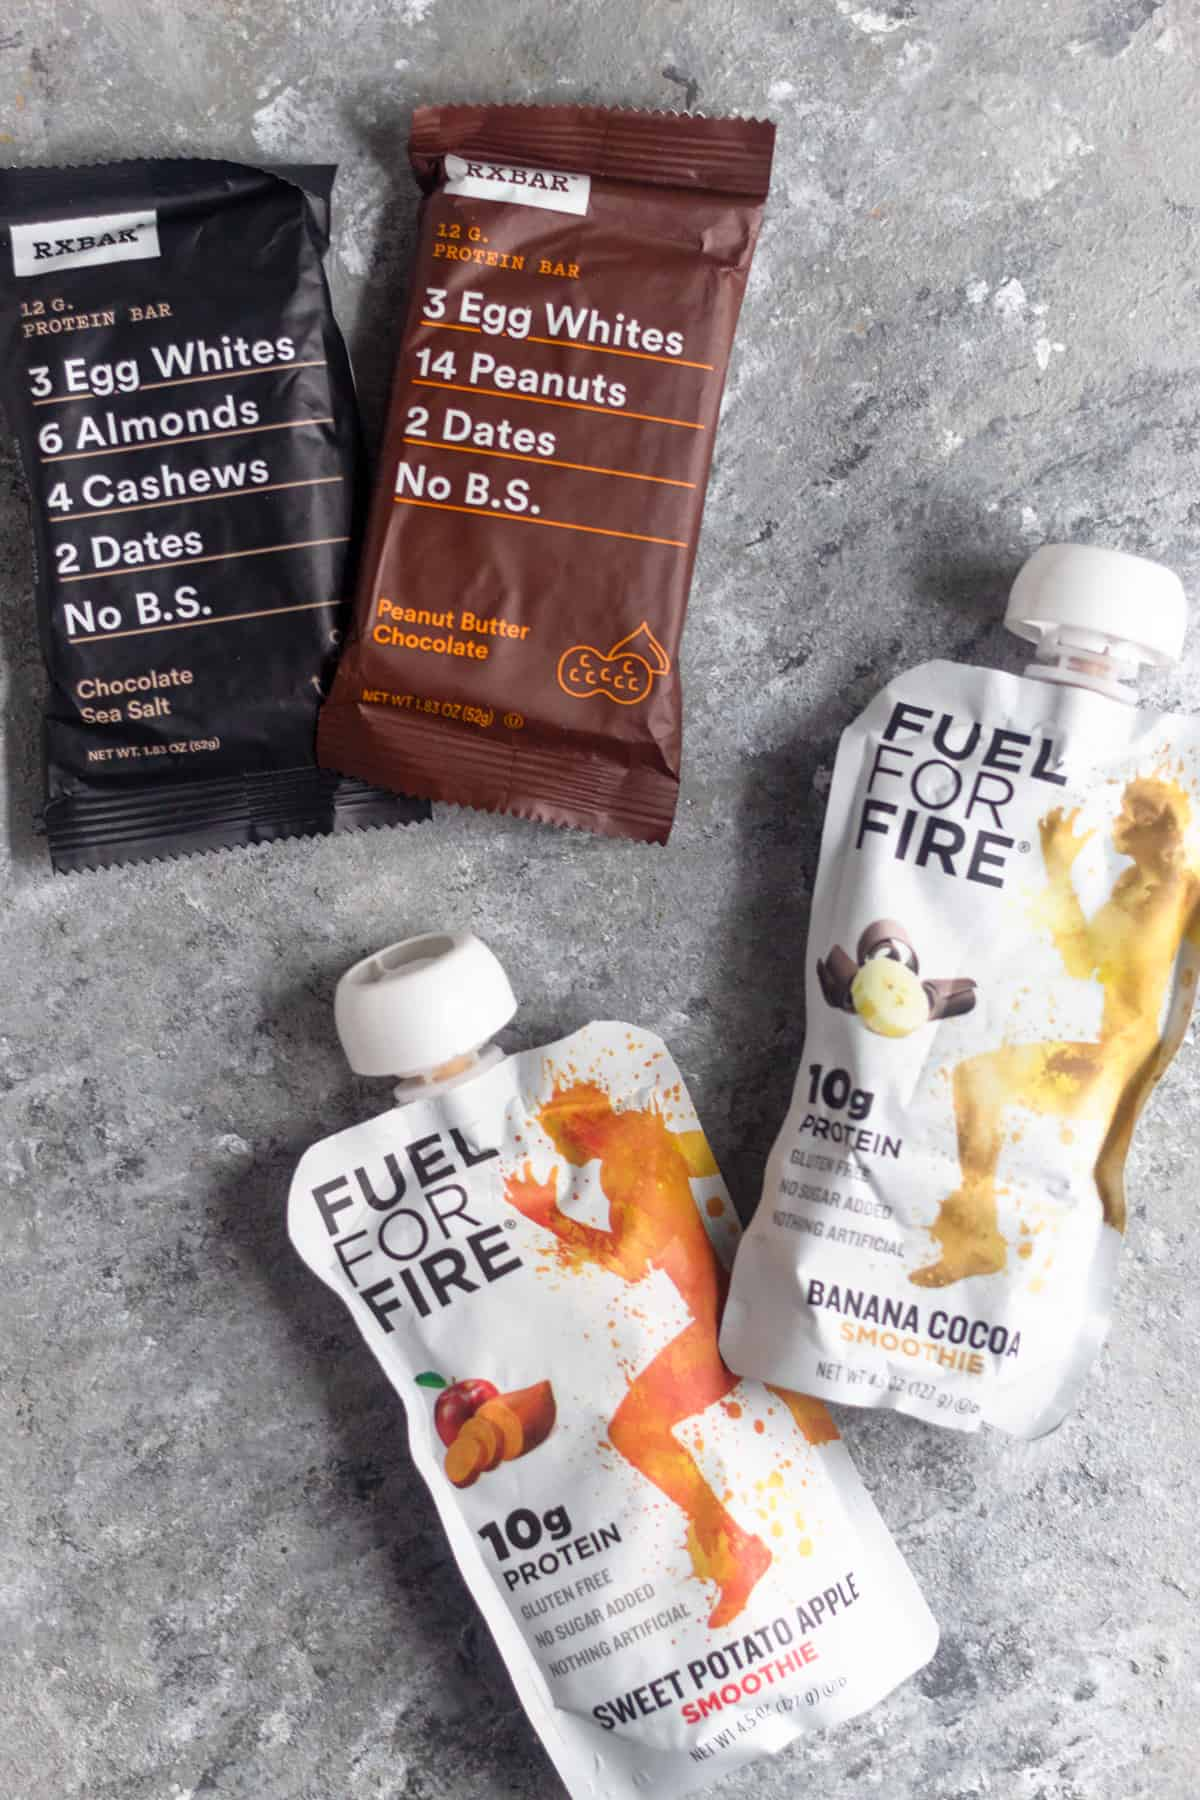 Two RXbars and two Fuel for Fire packets on a grey surface